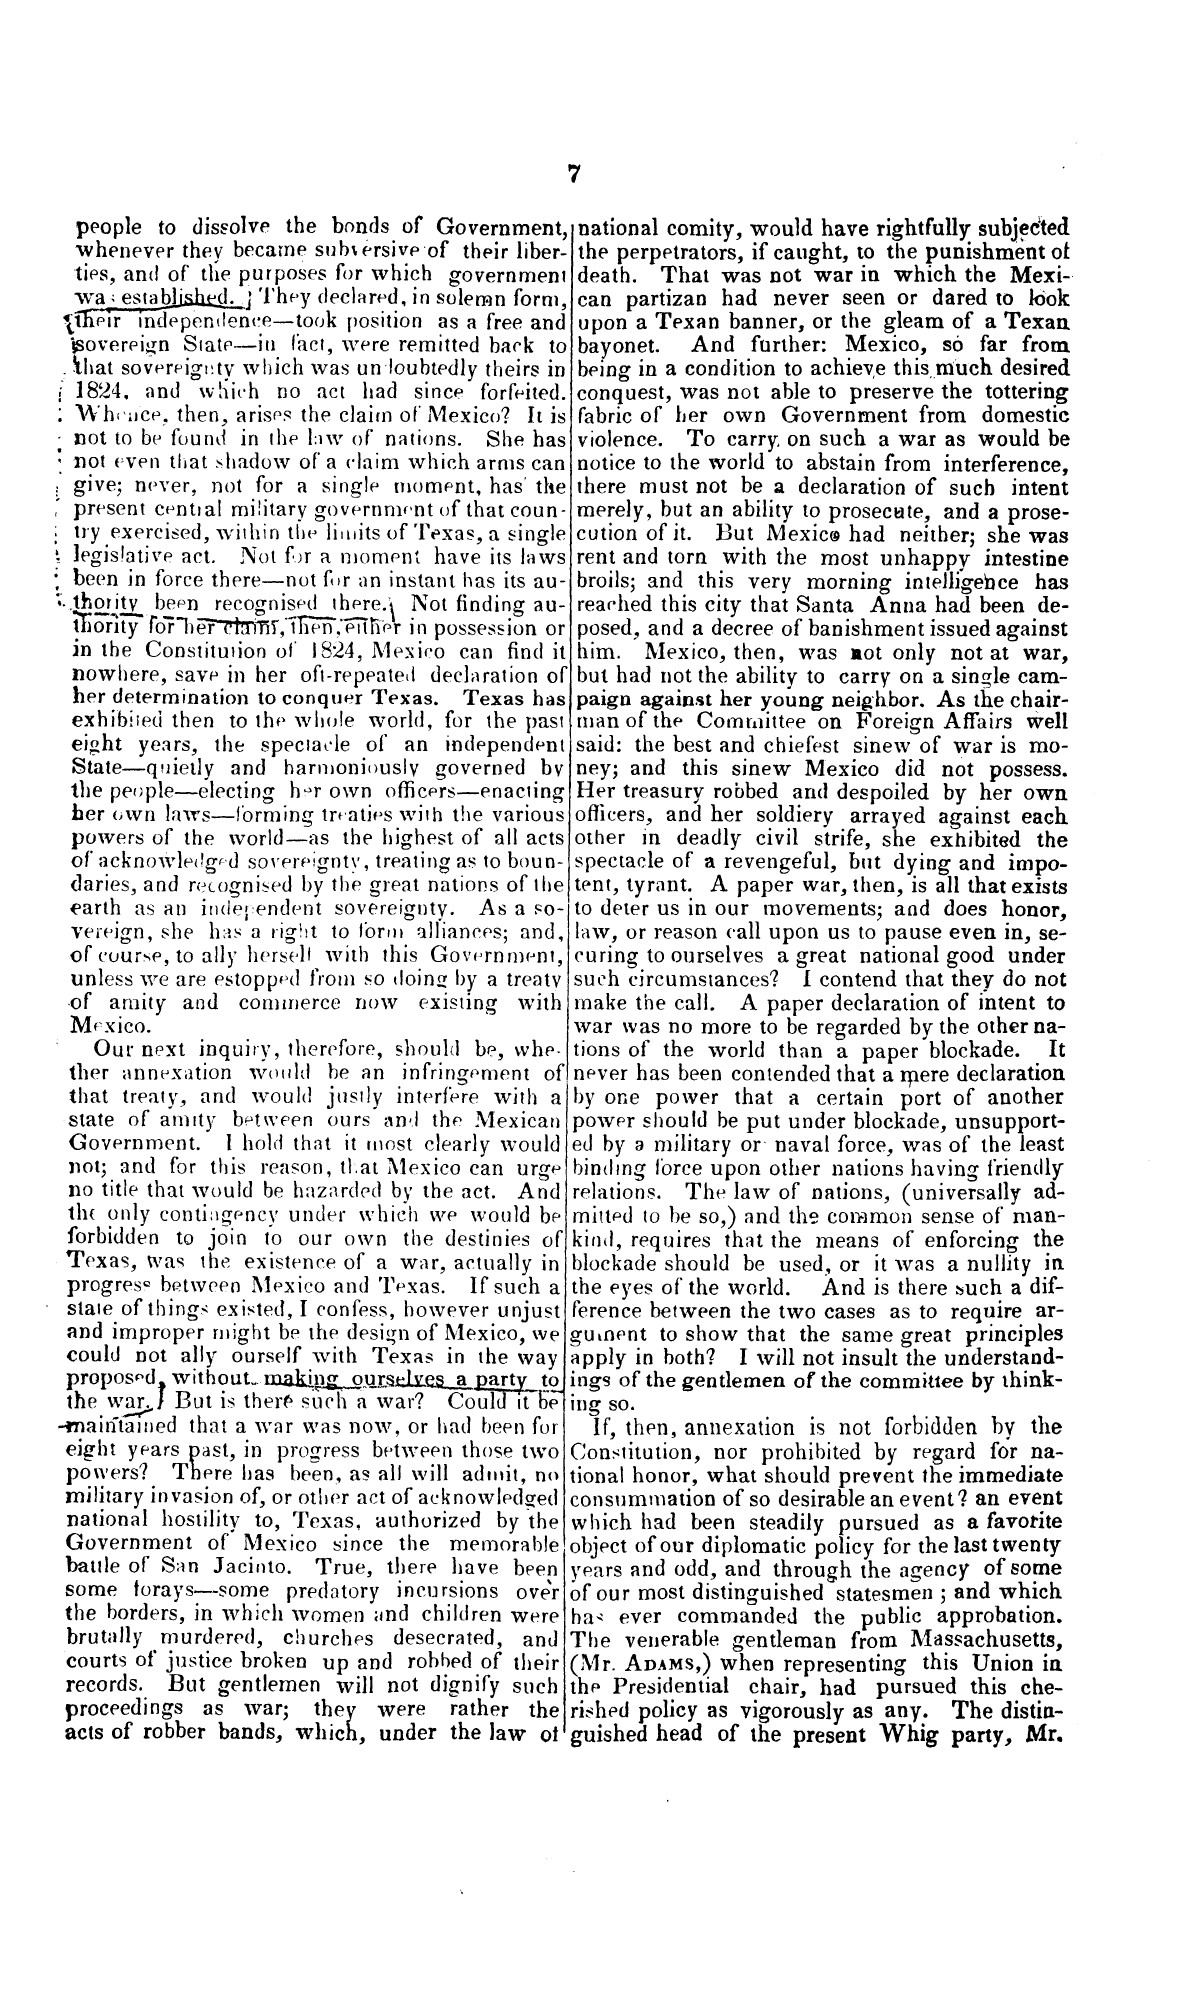 Speech of Hon. Wm. Lowndes Yancey, of Alabama, on the annexation of Texas to the United States, delivered in the House of Representatives, Jan. 7, 1845.                                                                                                      [Sequence #]: 7 of 14